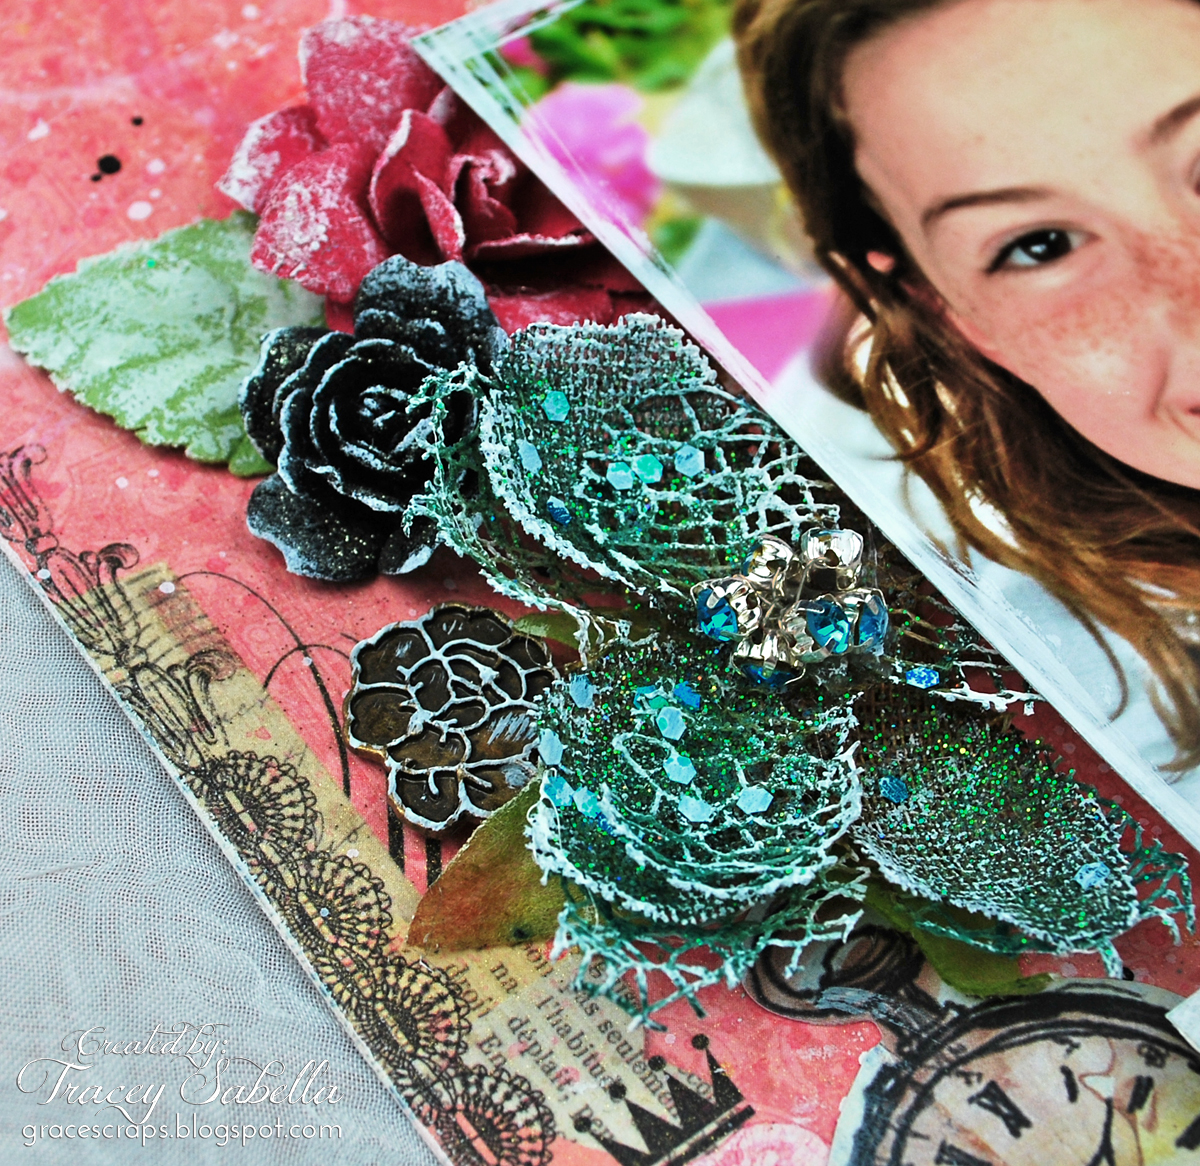 Mixed media layout by Tracey Sabella for C'est Magnifique, Blue Fern Montage, Prima